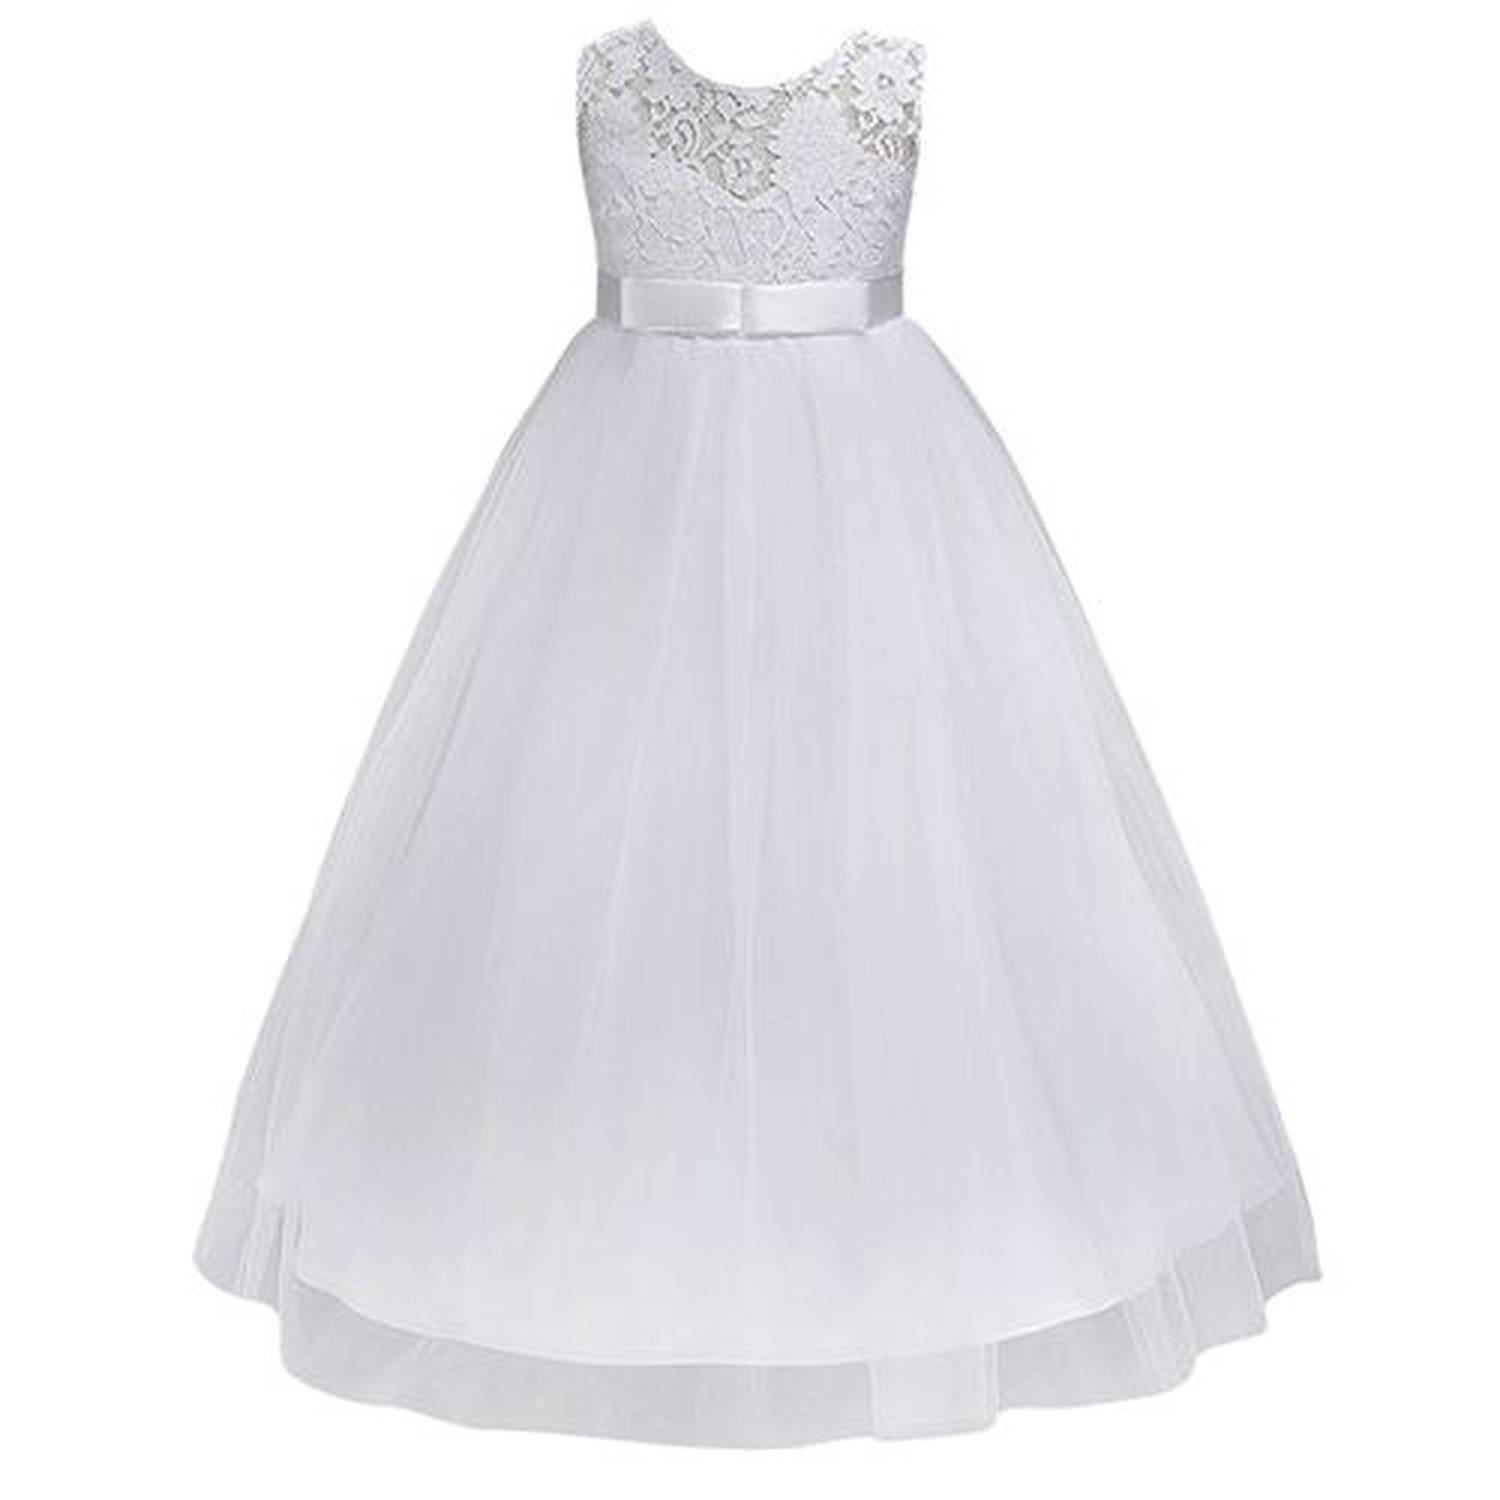 Toping Fine girl dress Petites Filles Robes Princess Lace Flower Girl Girls Pageant Dresses,White,Child-11